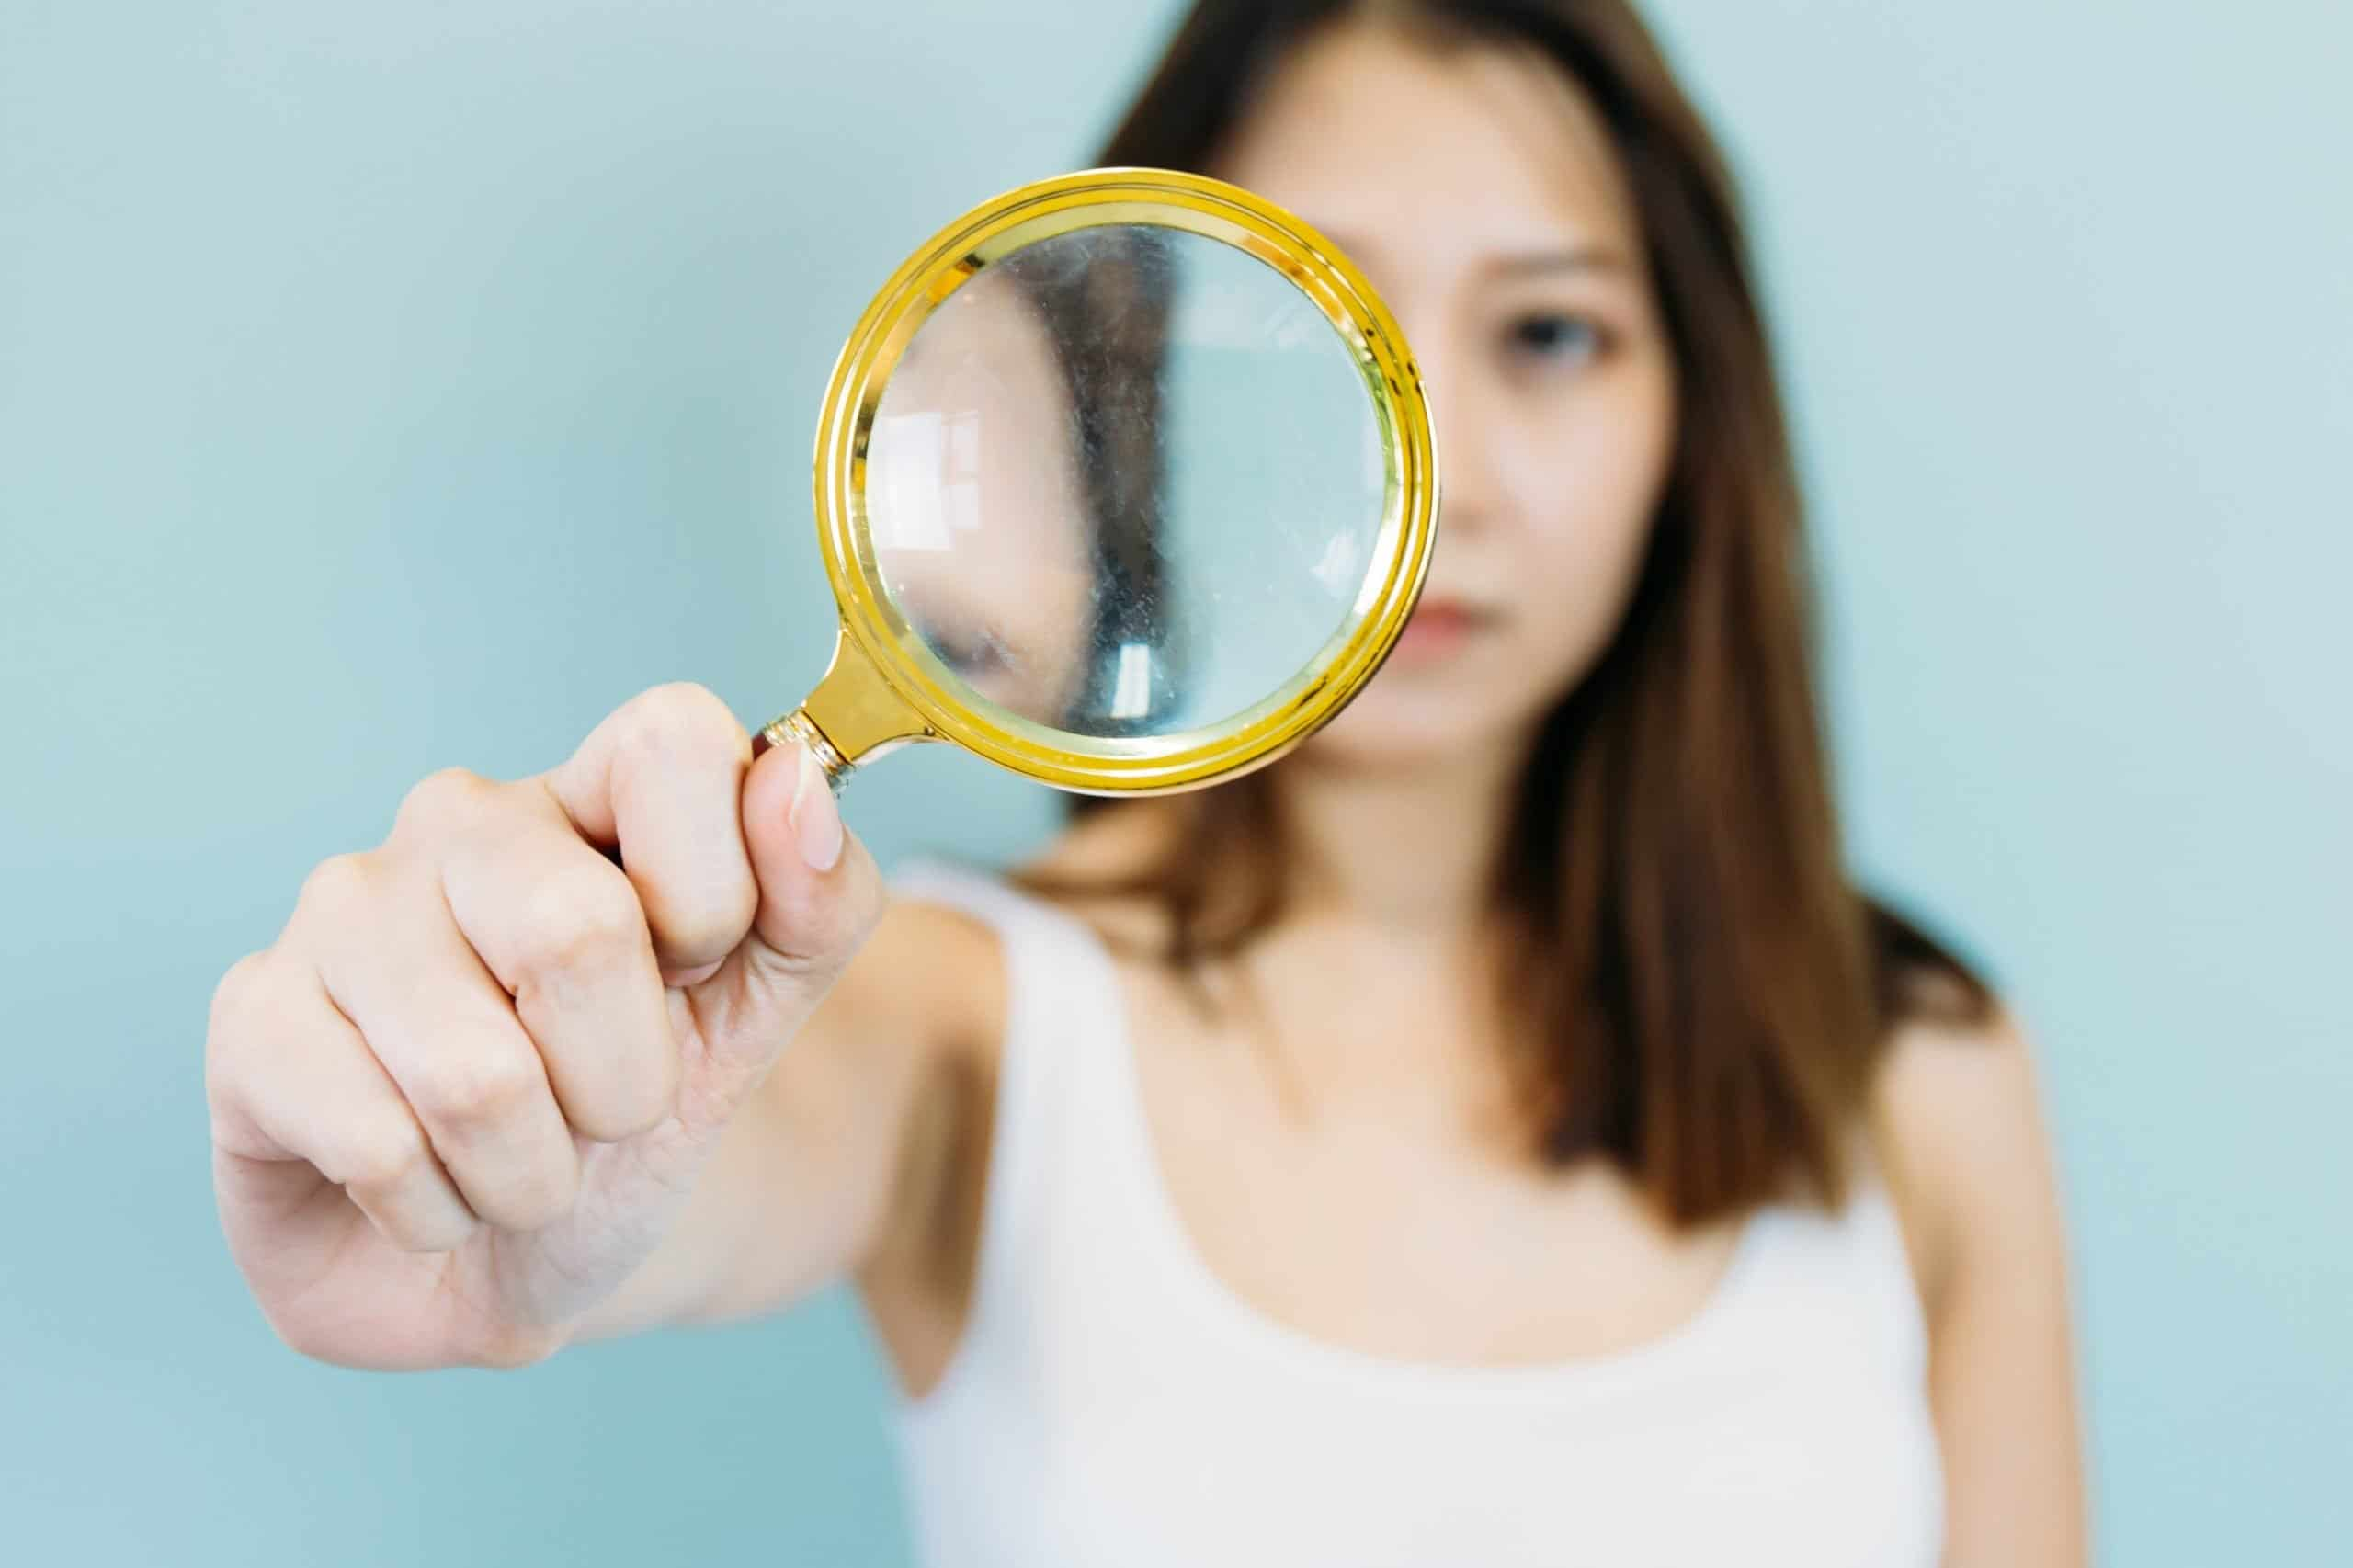 Insight for the Journey: Magnifying the Negative